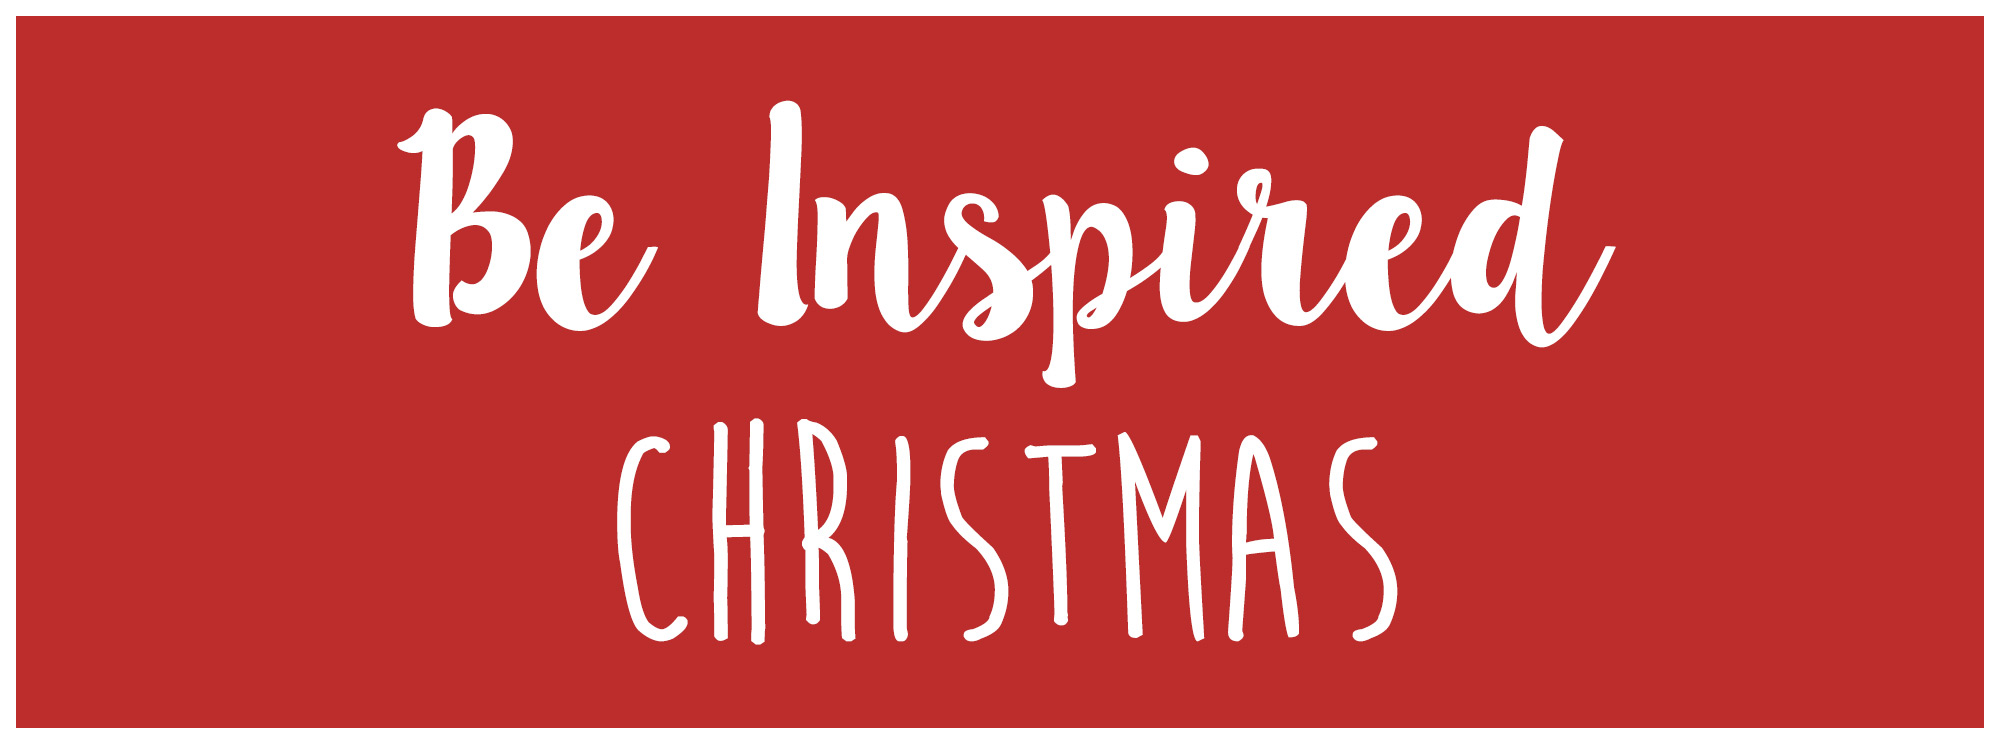 Be Inspired Christmas